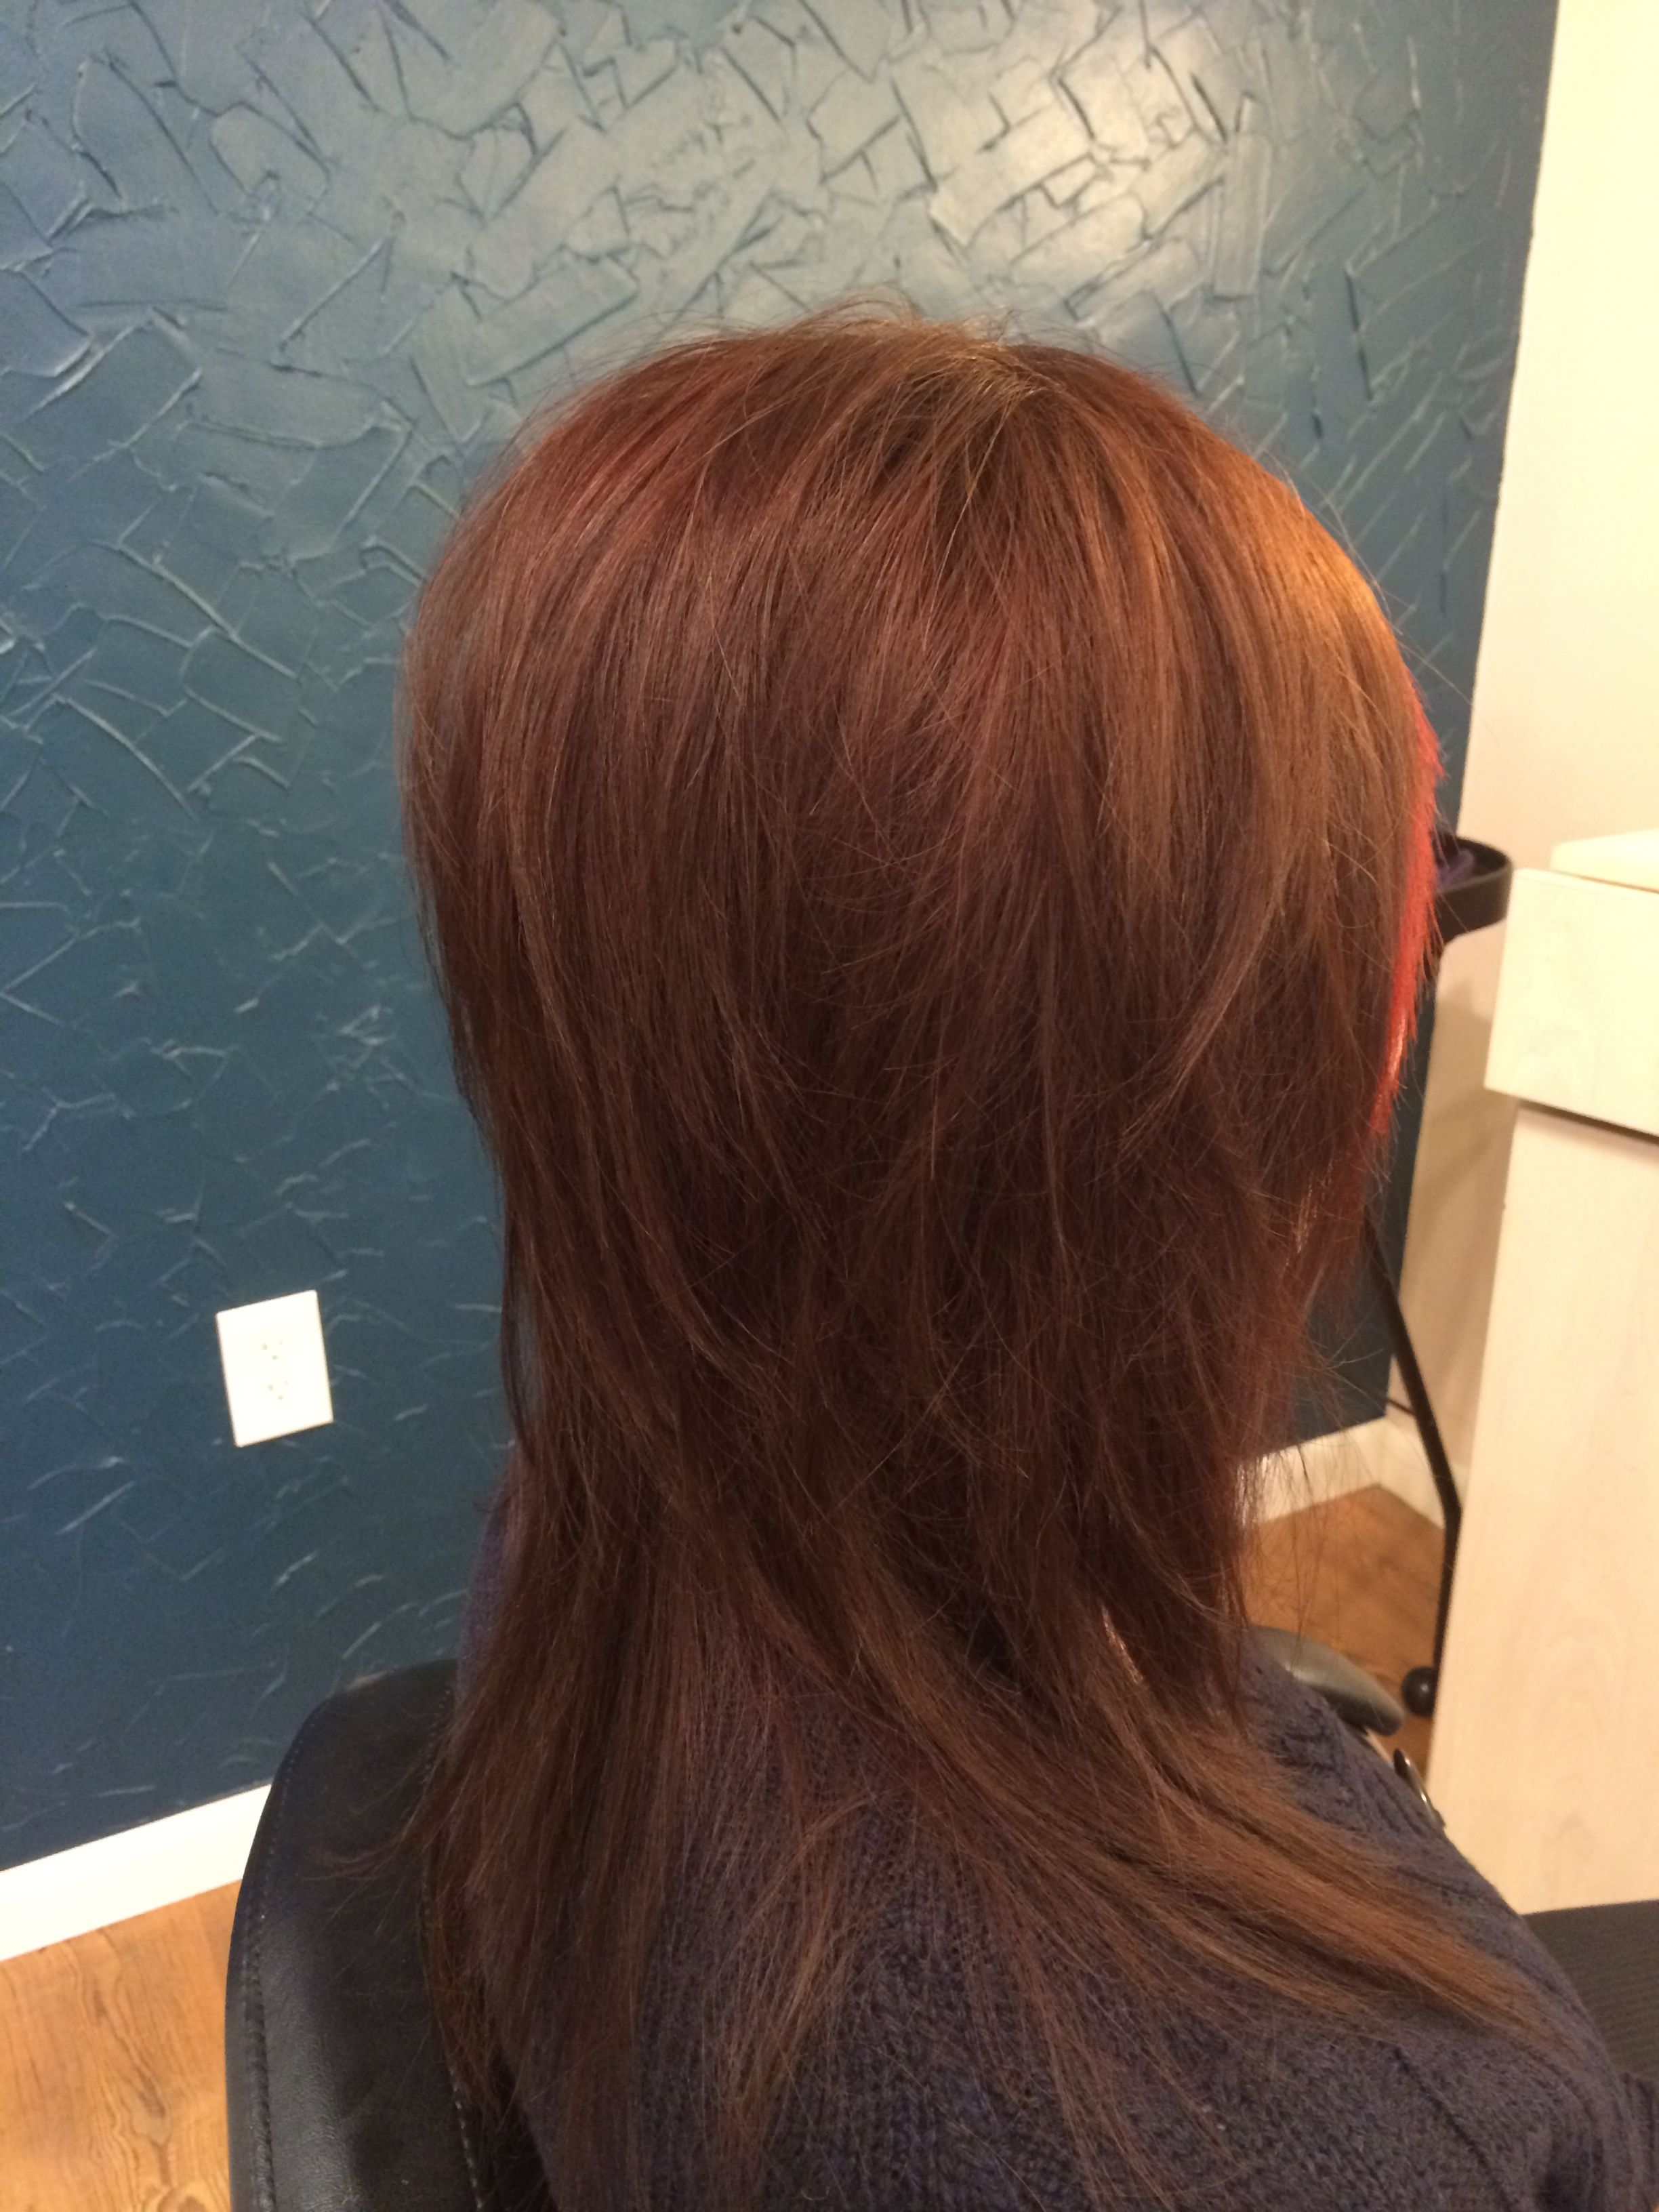 Haircut Styles For Long Thin Hair: Disconnected Layers, Razor Cut